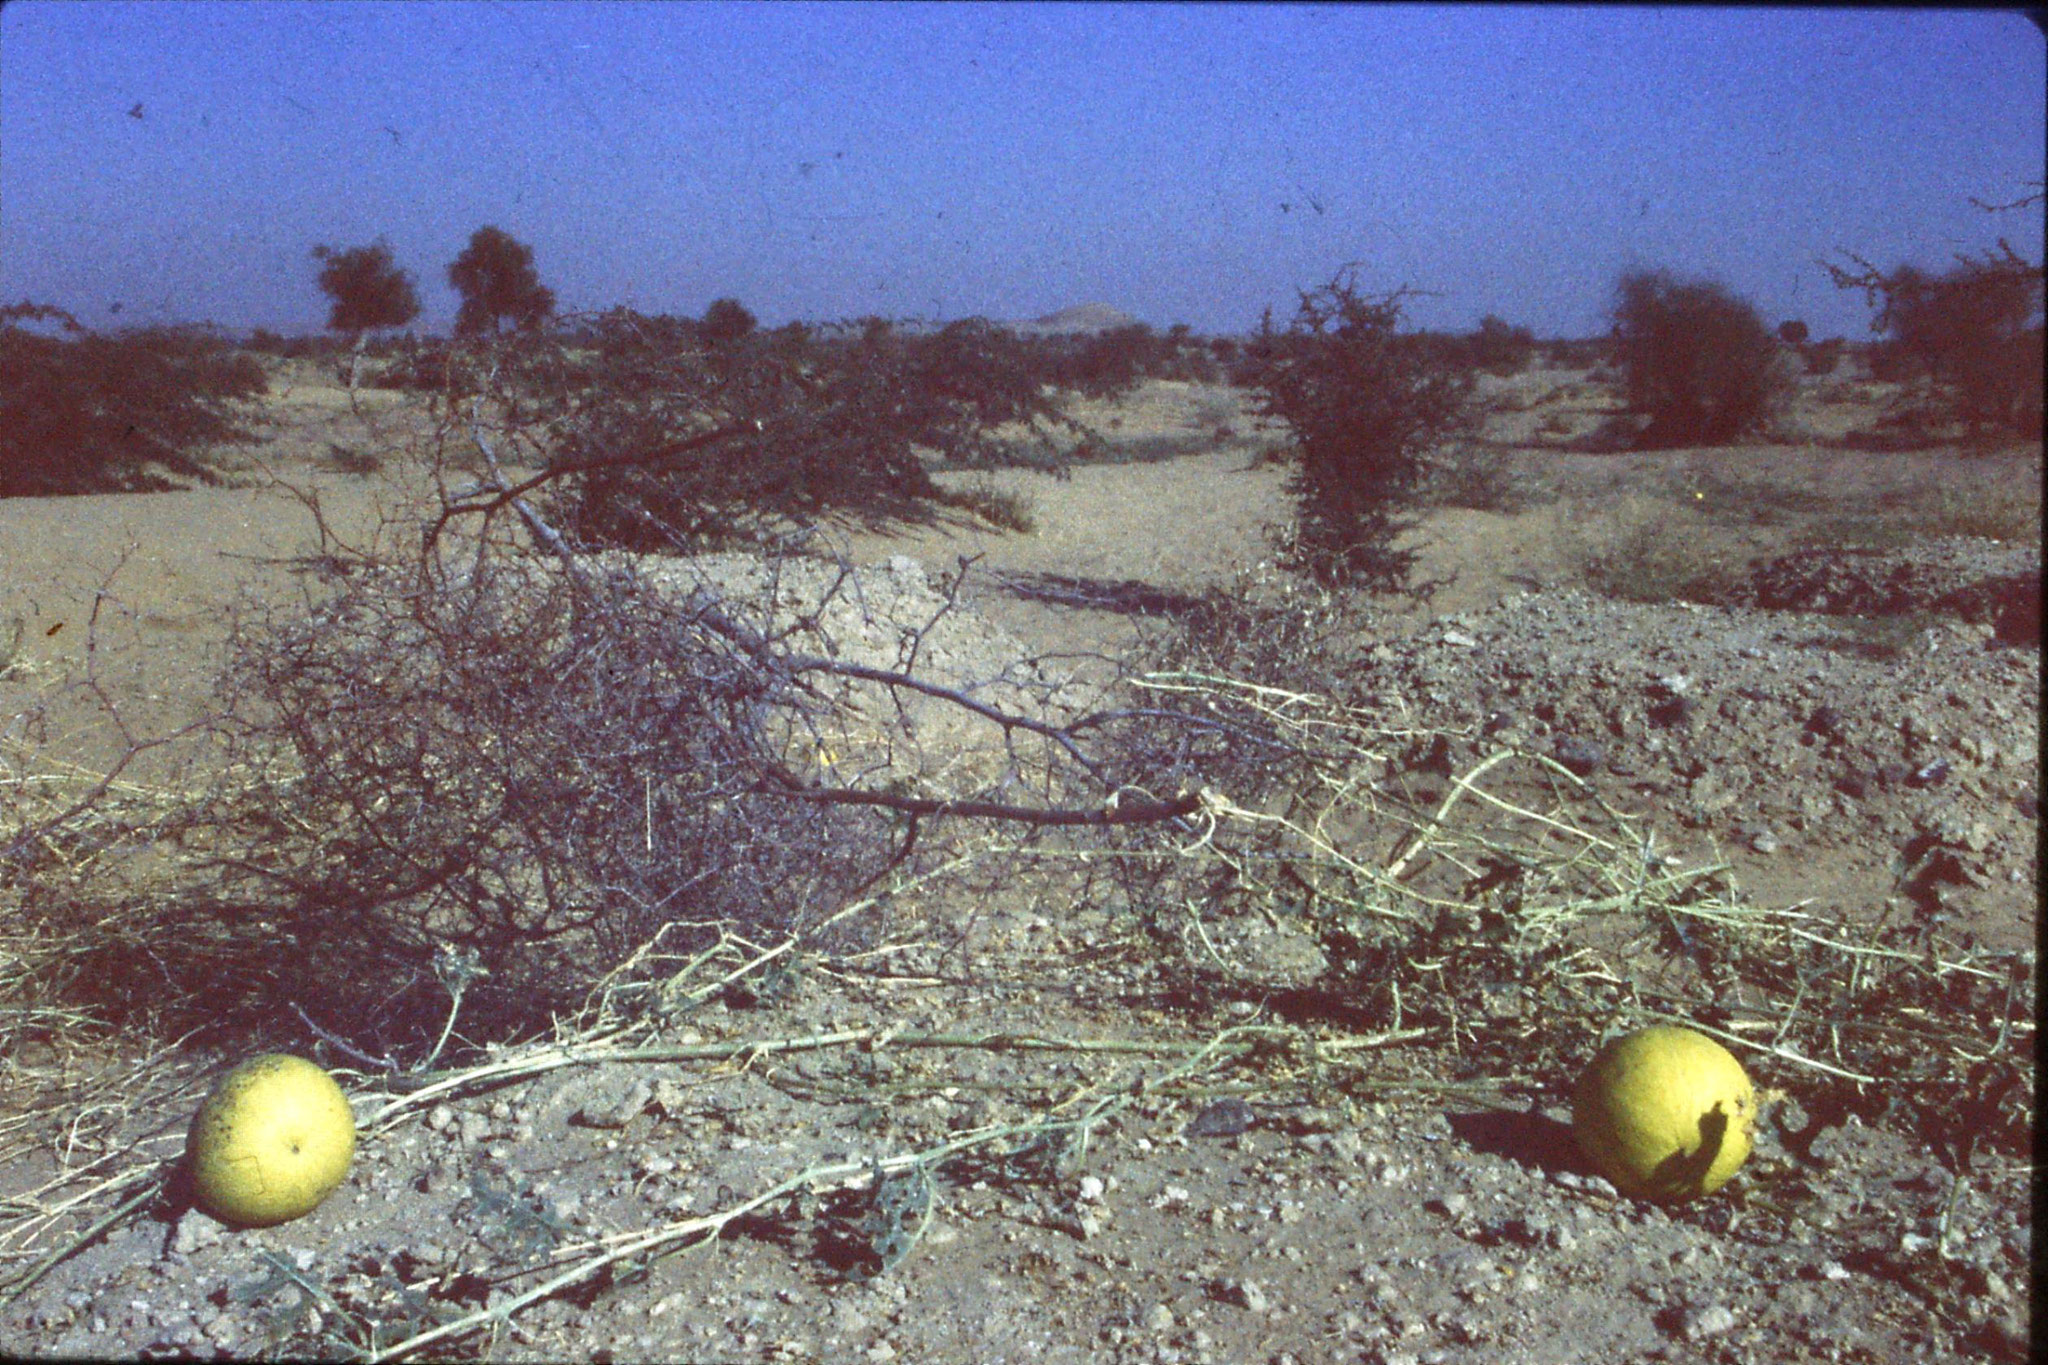 4/12/1989: 7: road to Barmer wild melons